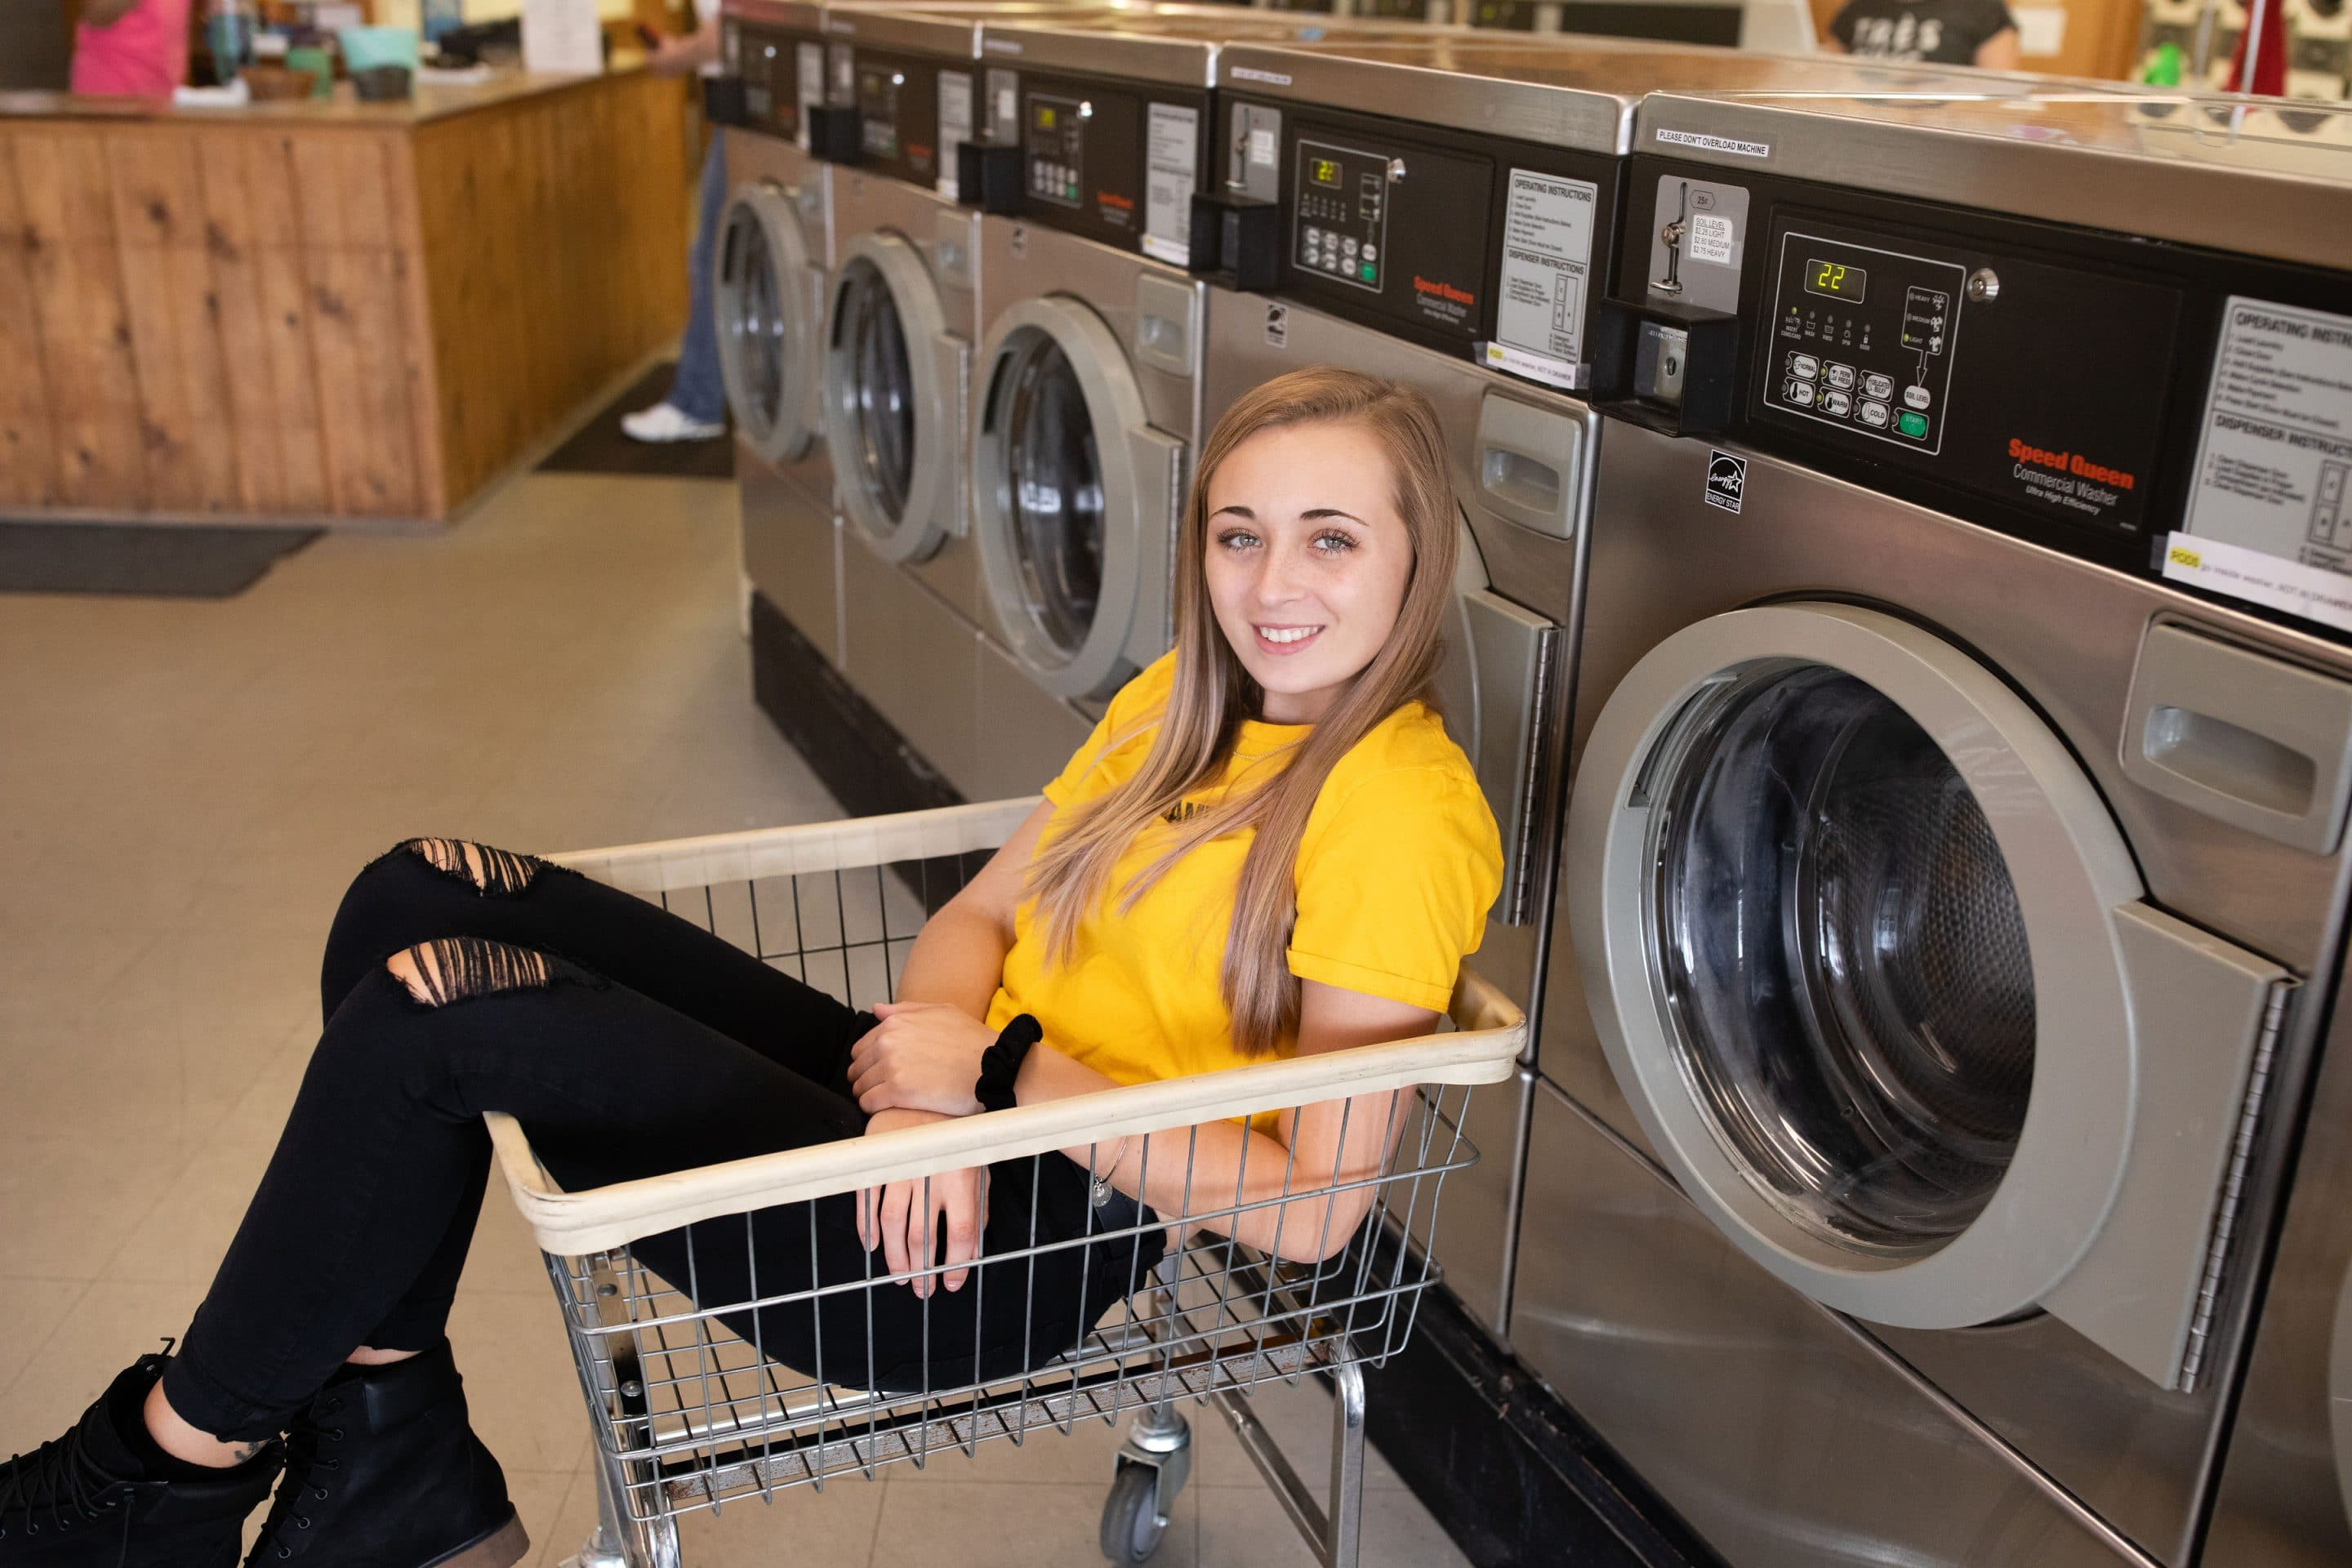 girl sitting in laundry cart inside laundromat